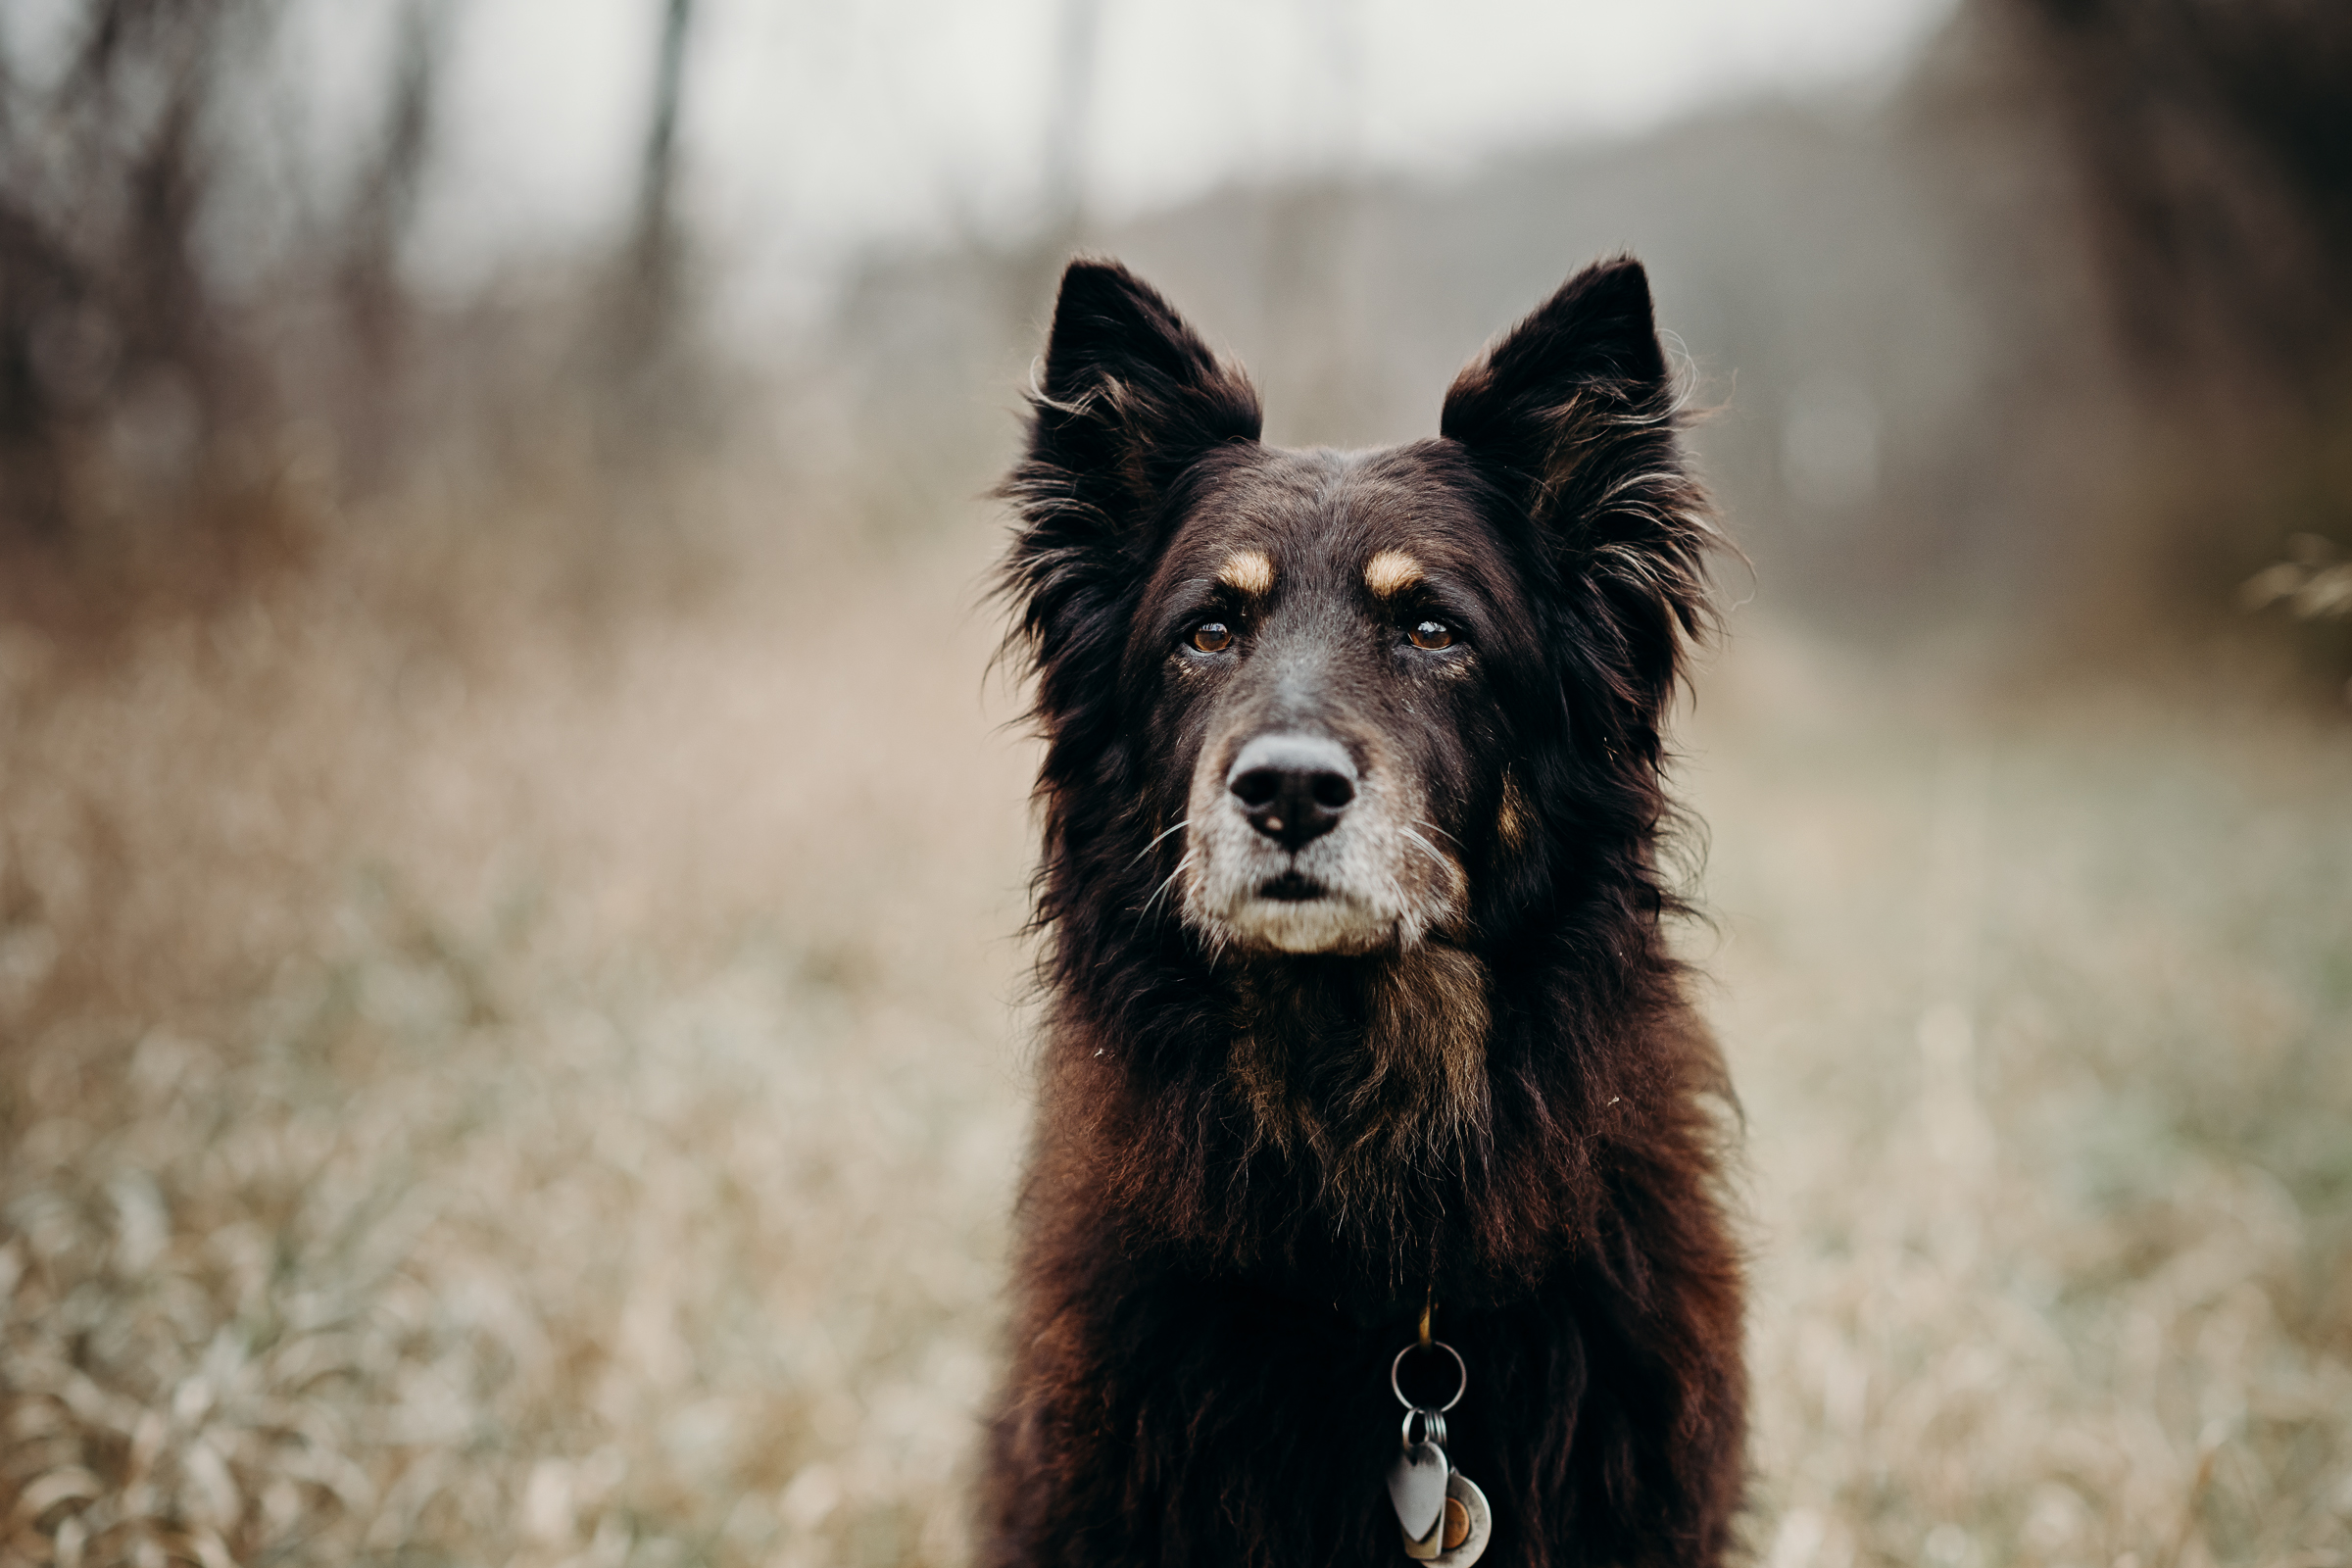 Dulcy, the 16 year old long haired black collie mix.